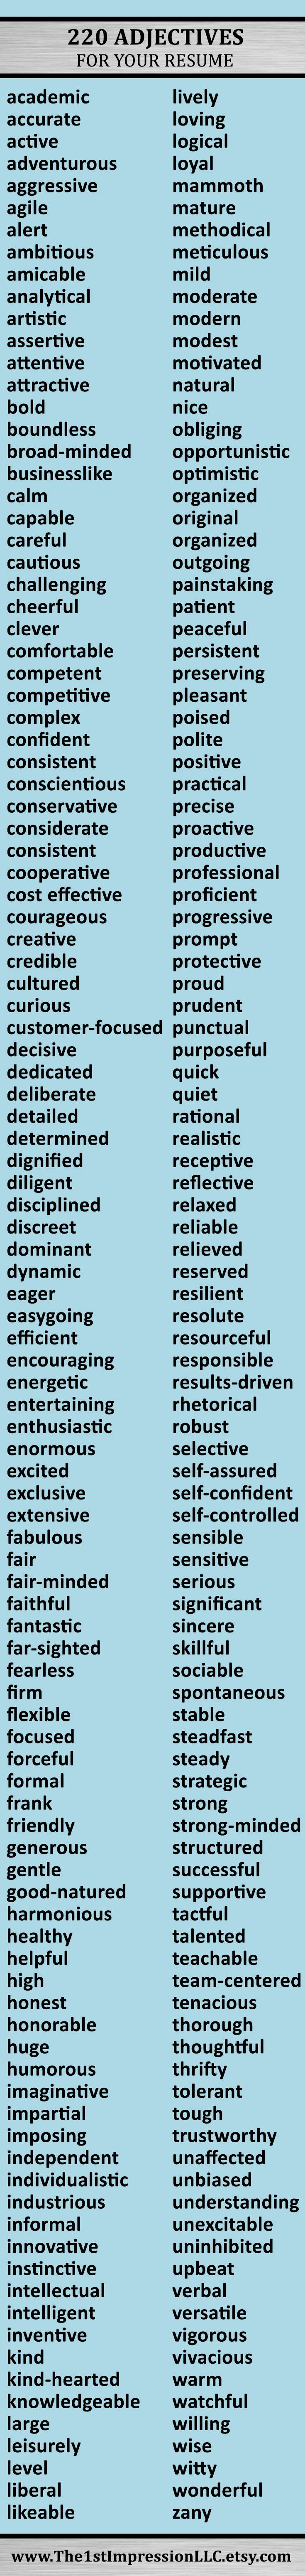 Huge List Of 220 Adjectives To Help You Write Your Resume!